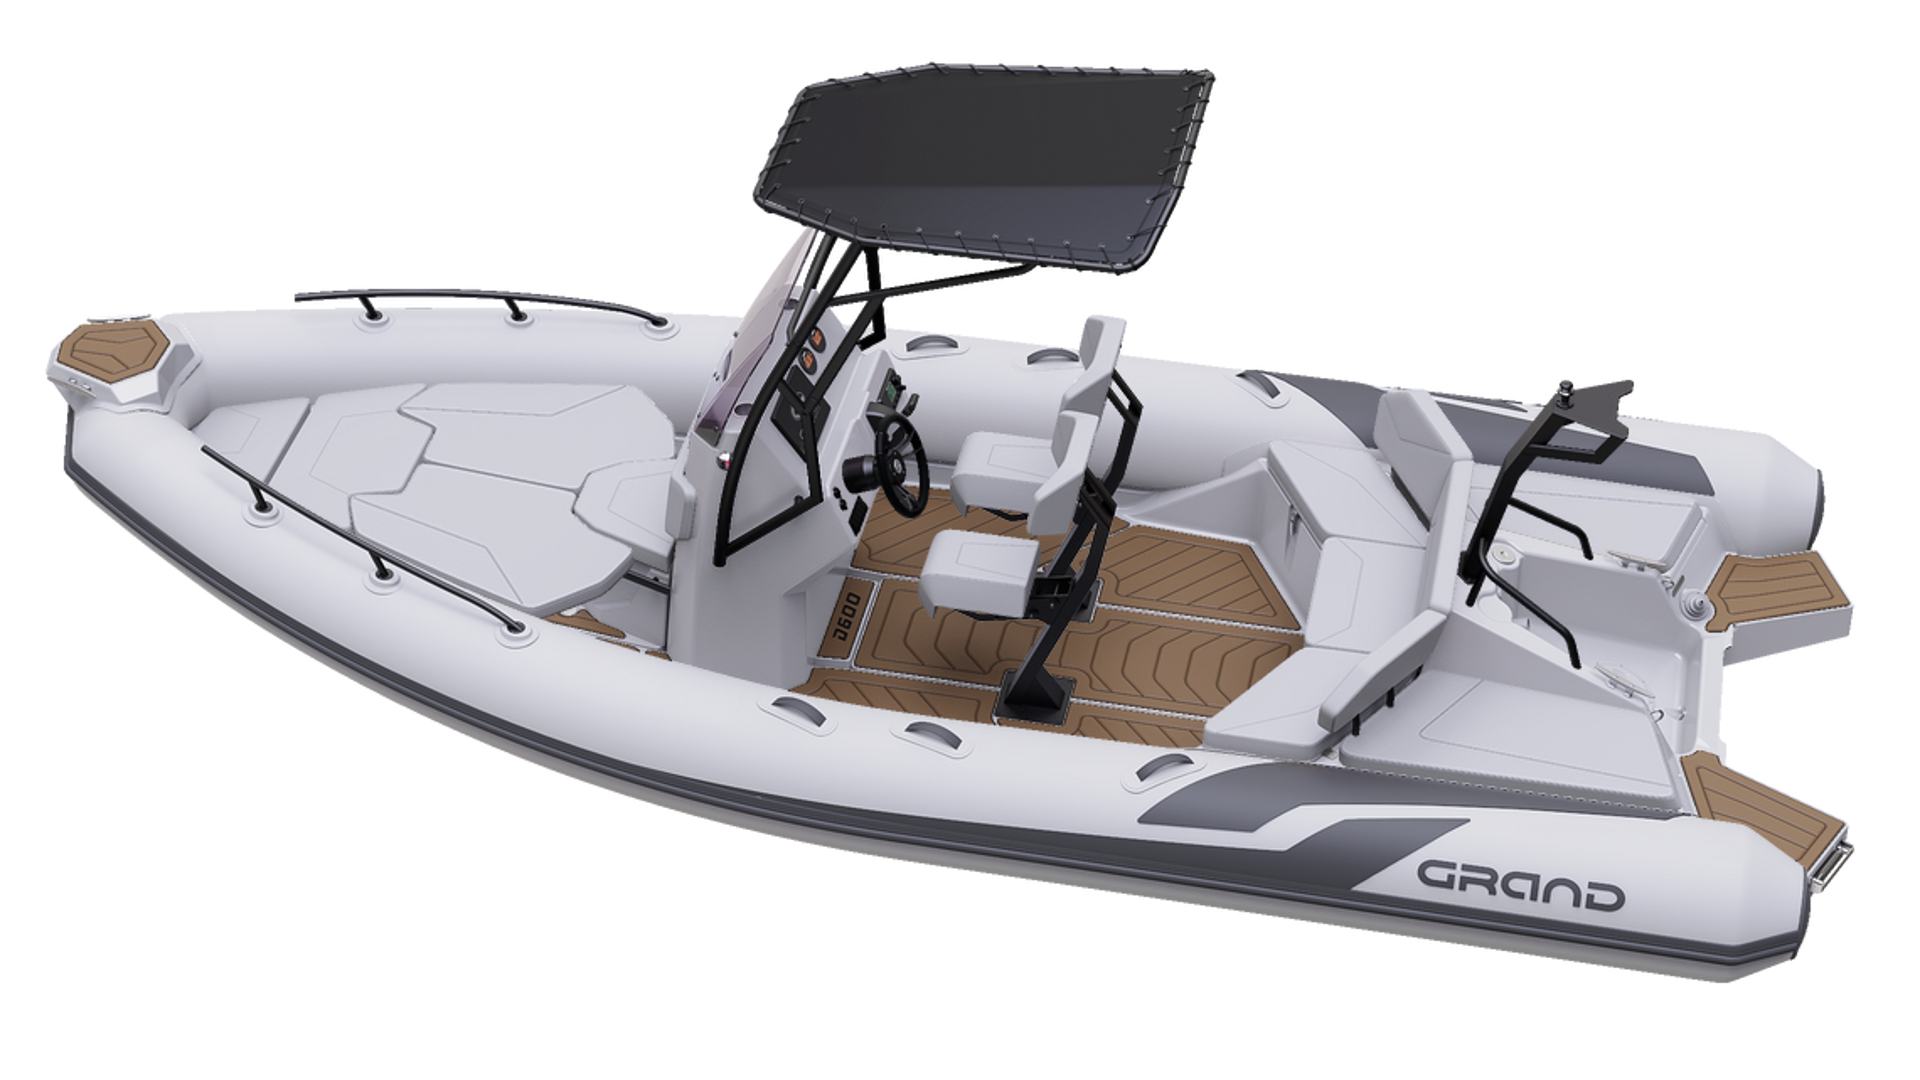 GRAND Drive Line, GRAND Drive, GRAND D600A, GRAND Drive D600 ACTIVE, GRAND RIB, Pro RIB, надувная лодка GRAND Drive D600A, Rigid Inflatable Boats GRAND